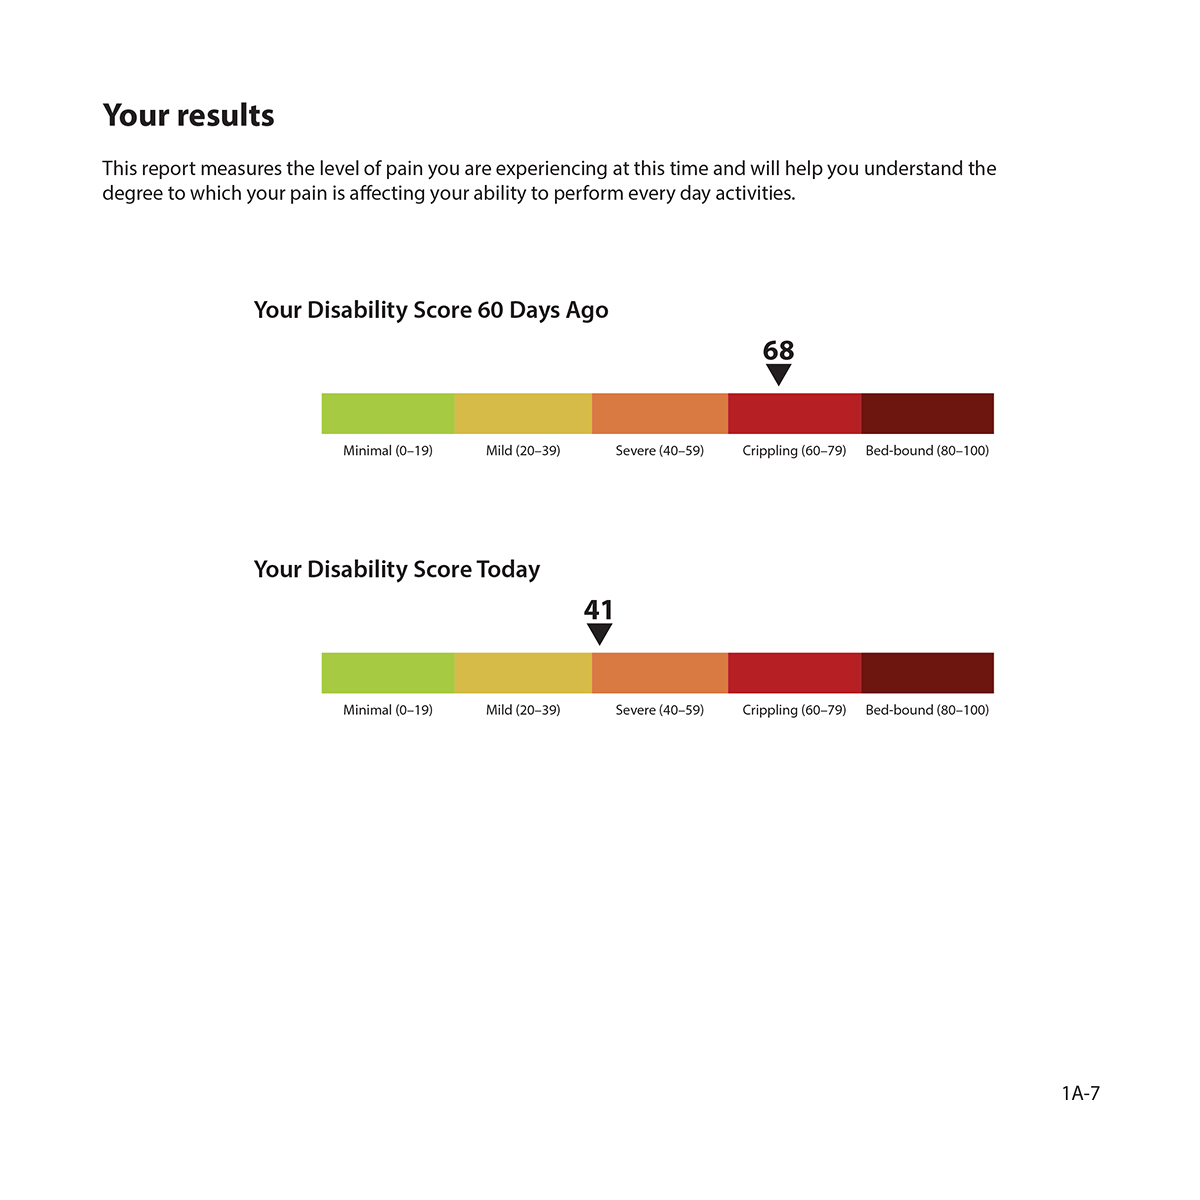 Heat bars showing your results PRO disability score 60 days ago and score today.